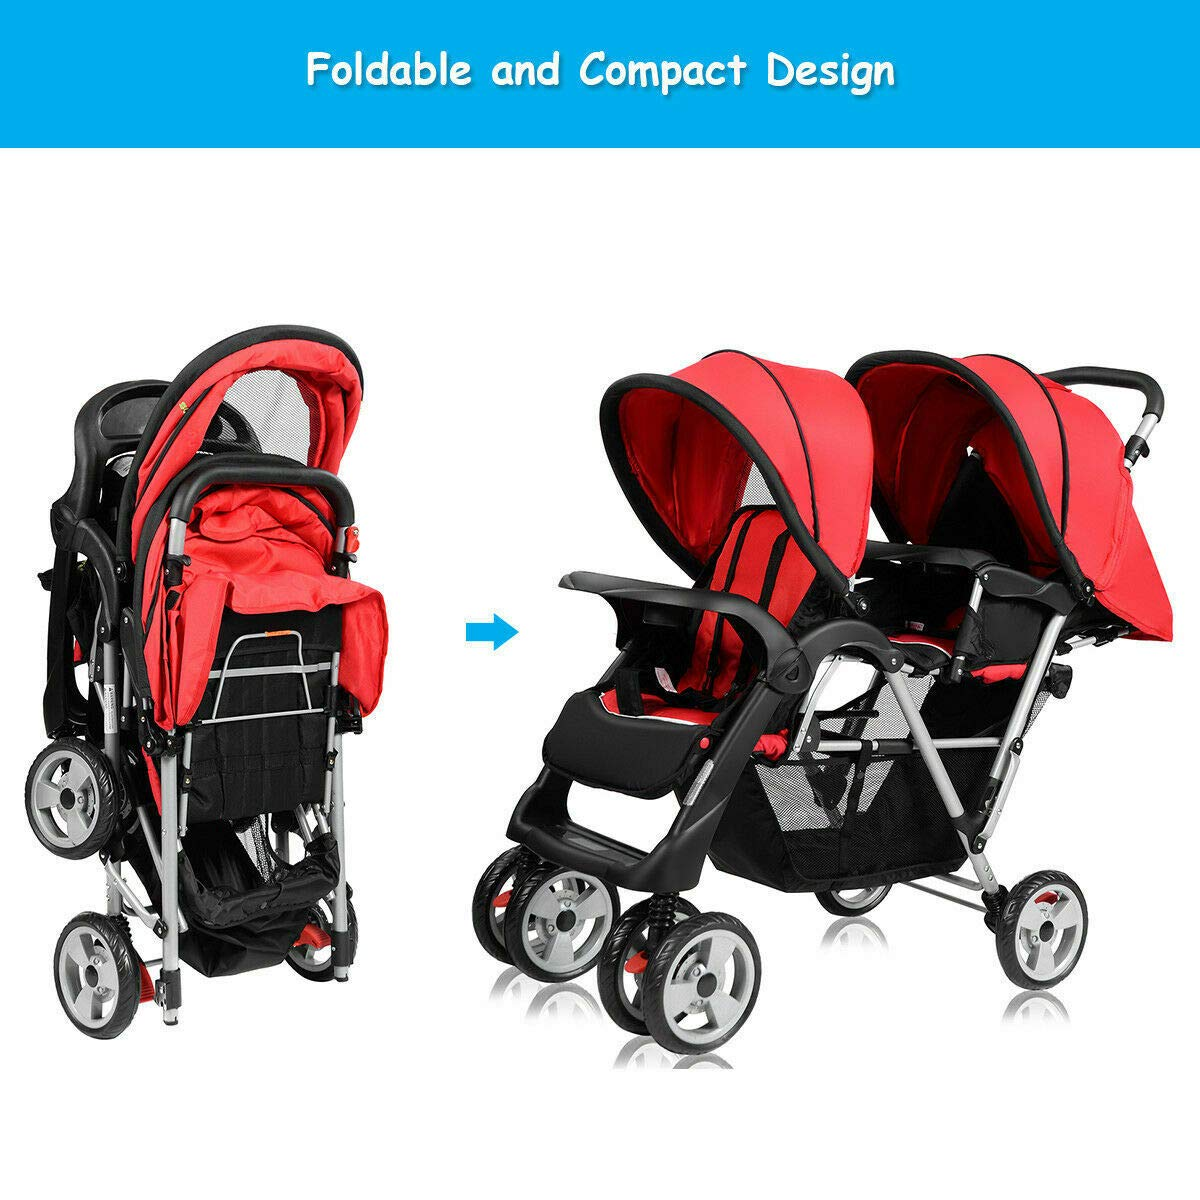 Cozinest Foldable Twin Baby Double Stroller Kids Jogger Travel Infant Pushchair Red by Cozinest (Image #5)